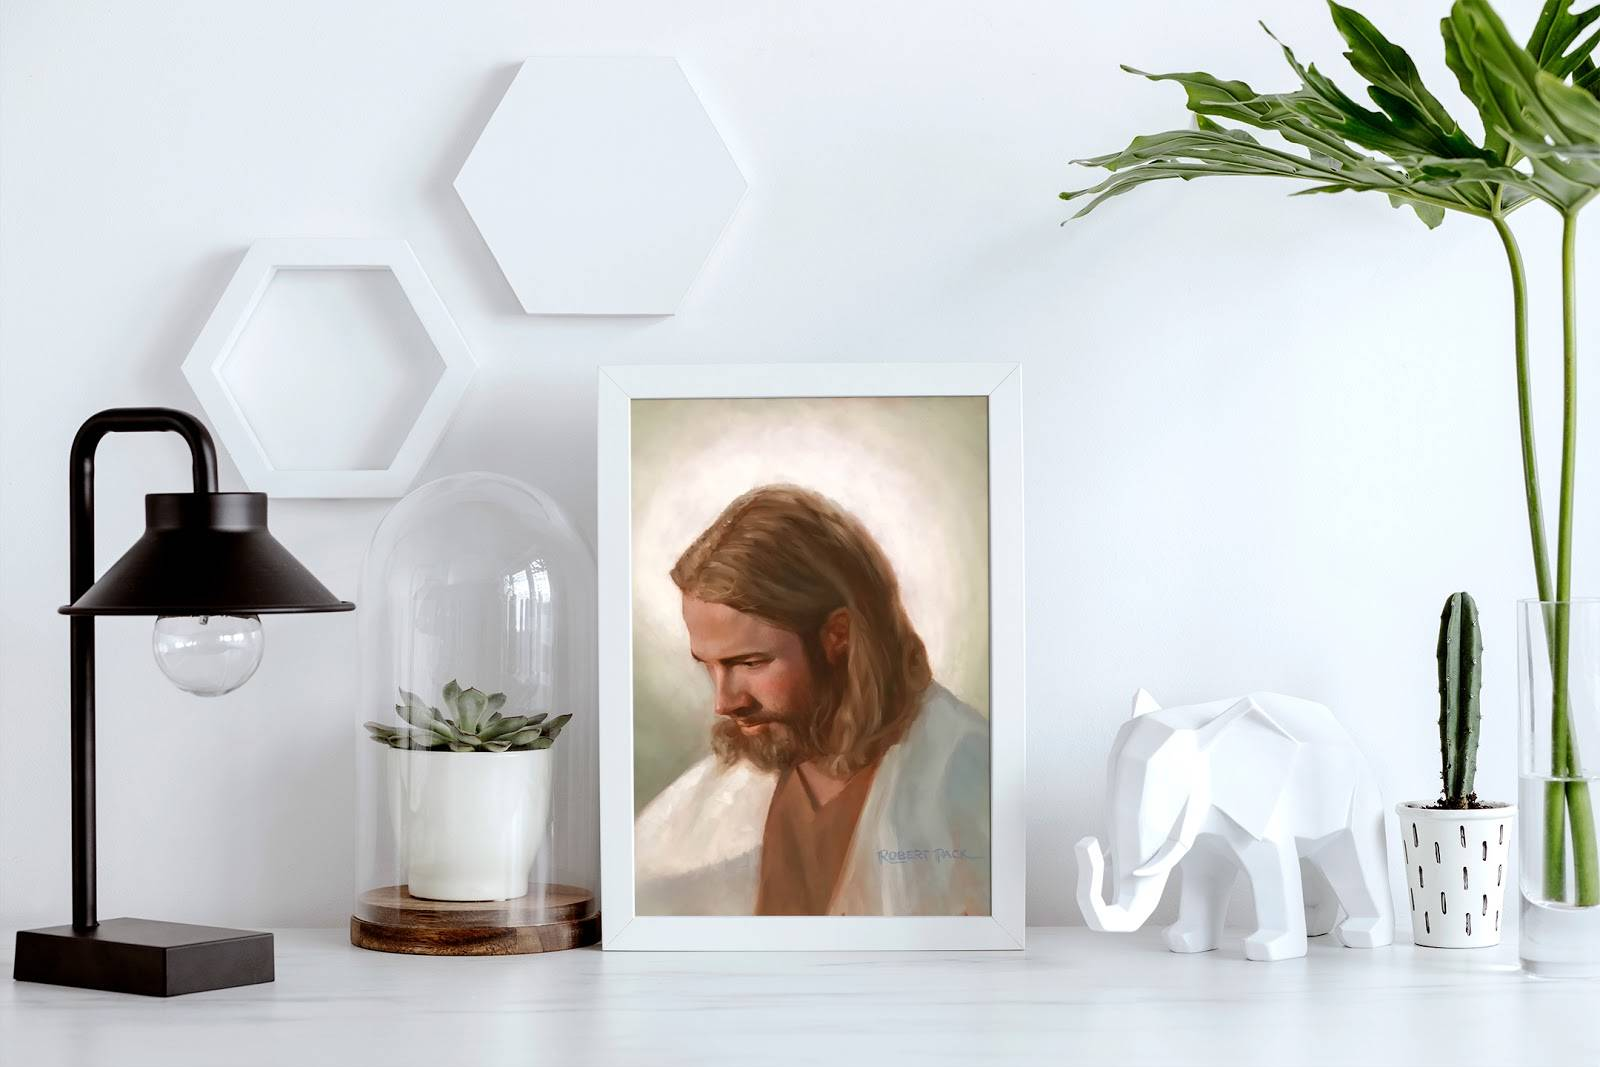 A small art portrait of Christ arranged next to a desk lamp and various other small items.